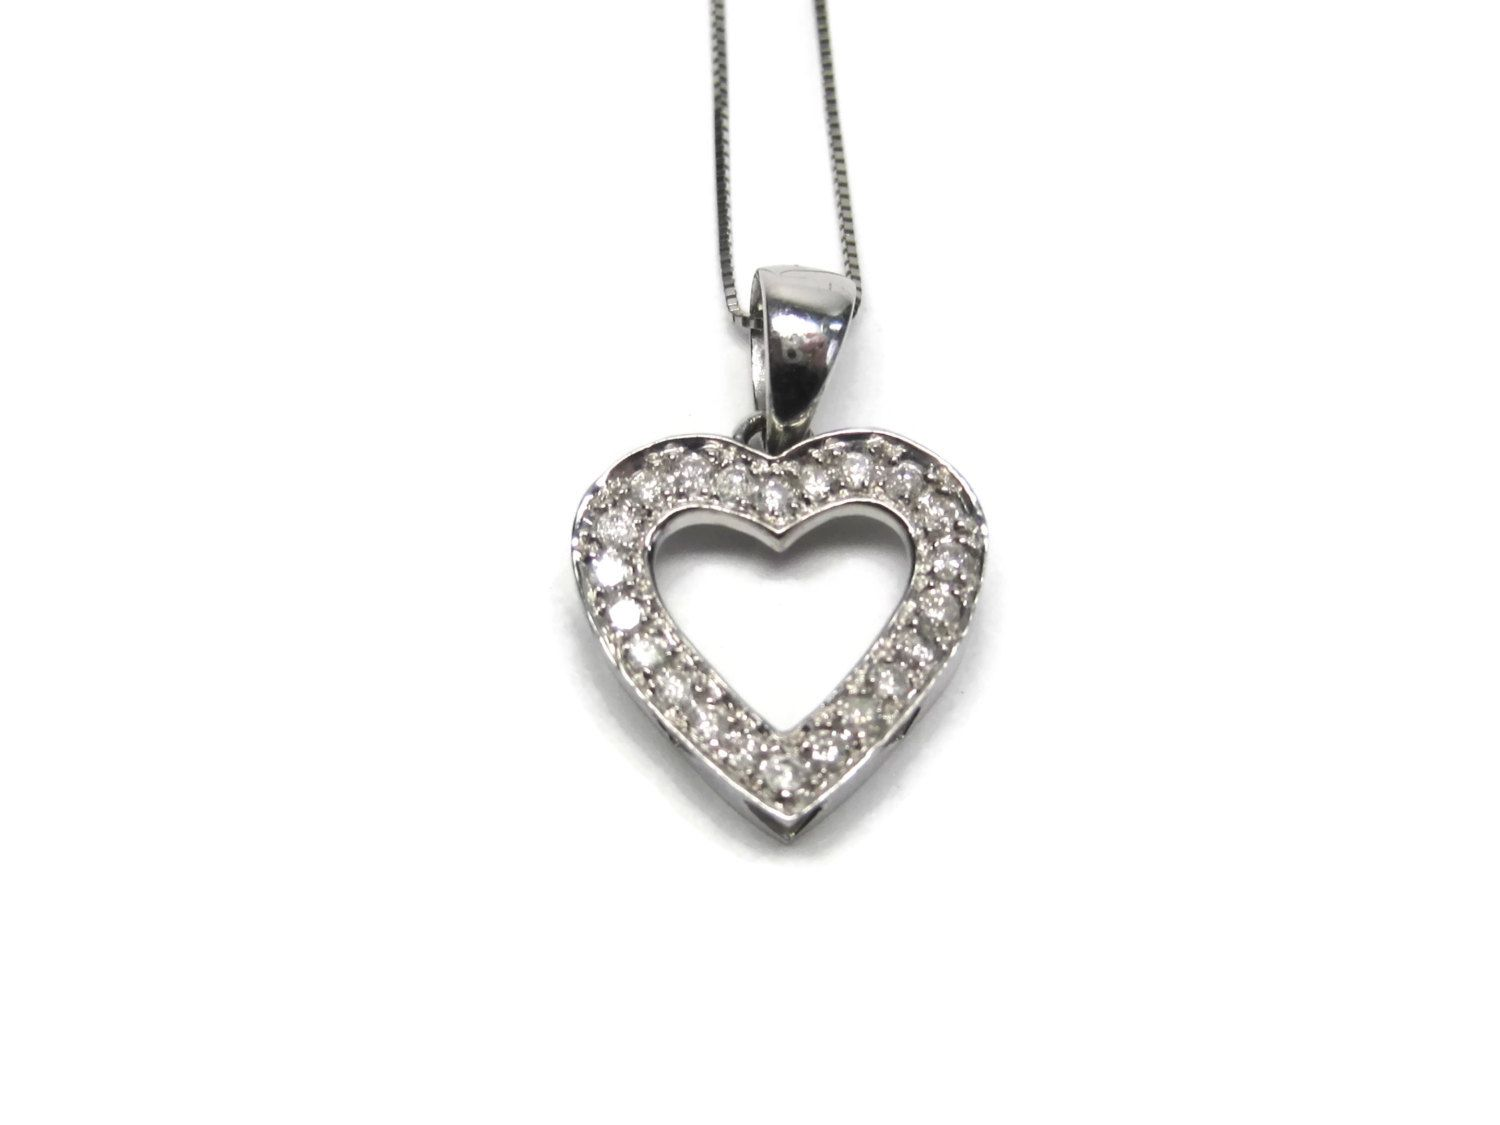 Vintage 14K White Gold .25 Carat Diamond Heart Pendant Necklace - pinned by pin4etsy.com